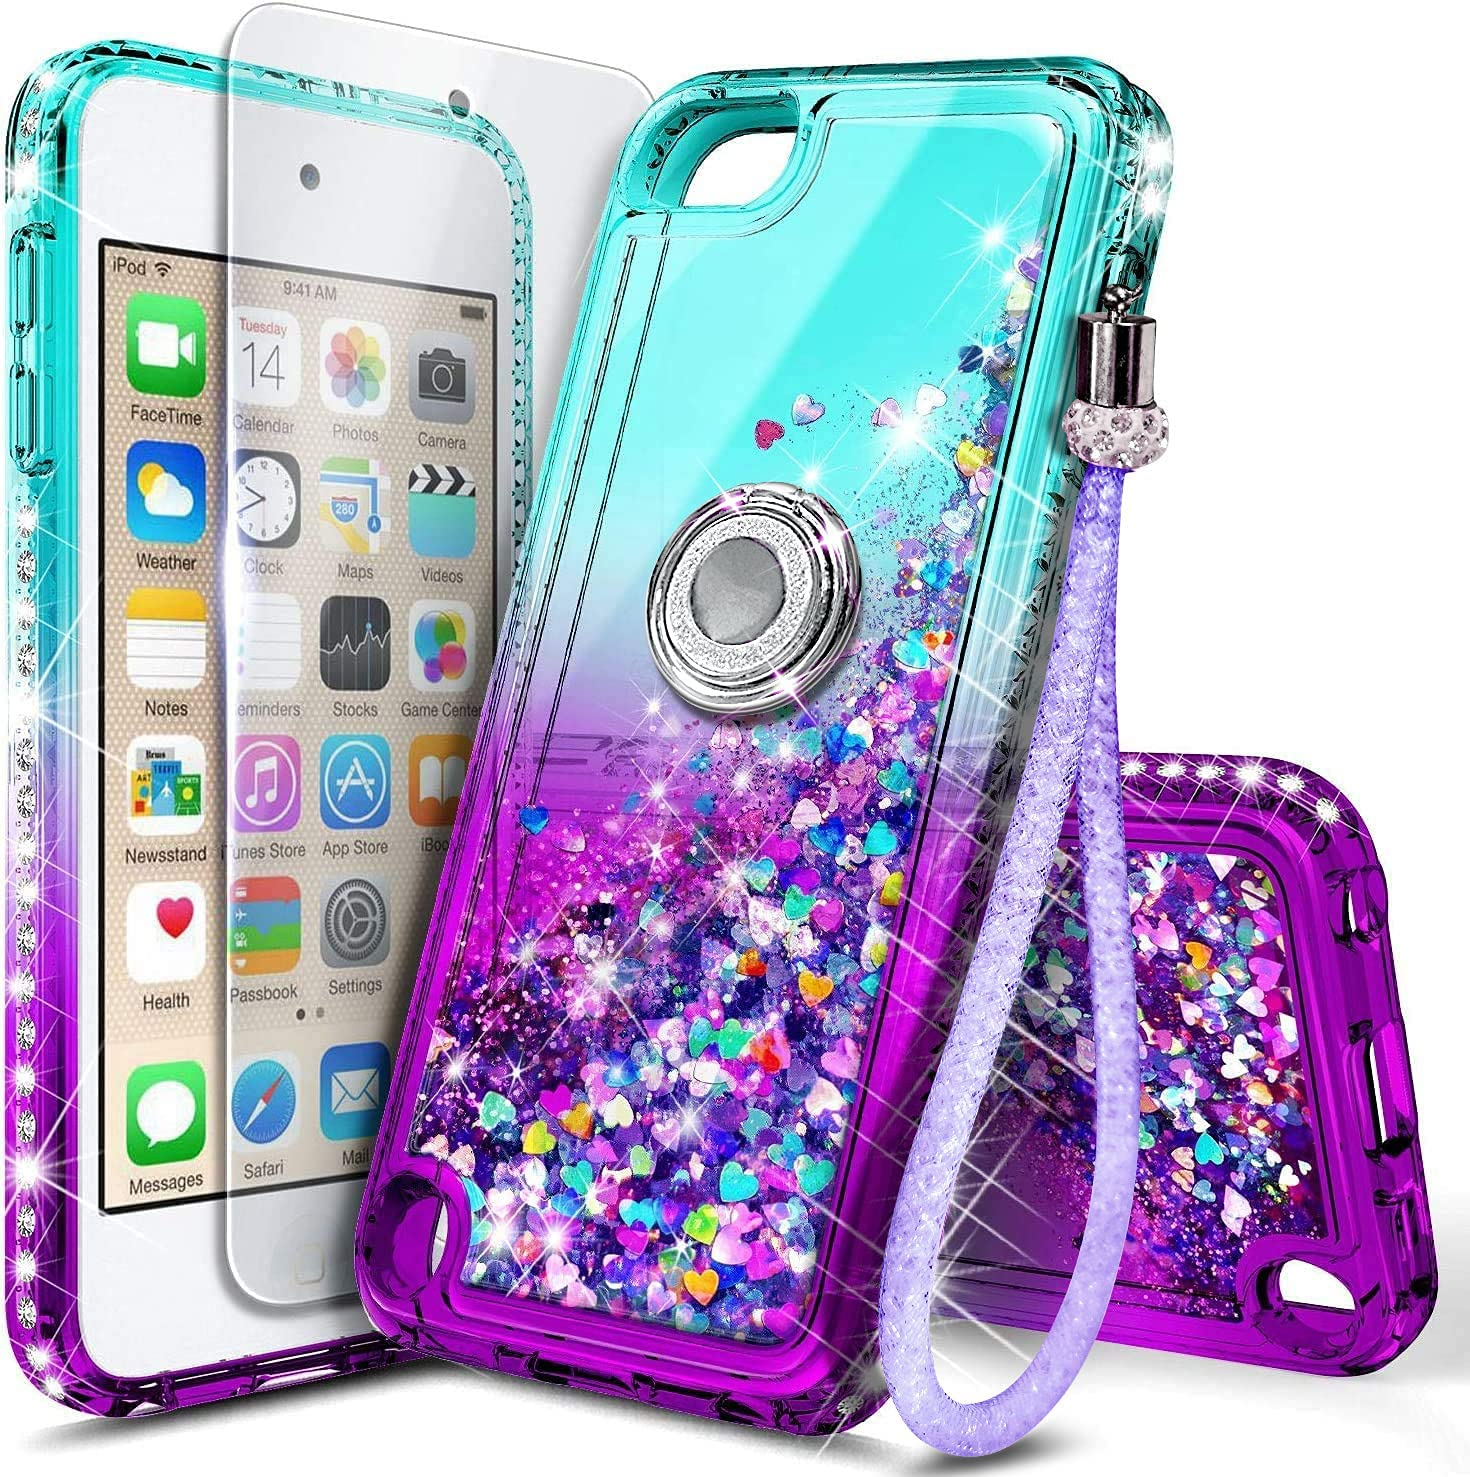 NGB iPod Touch 7 Case, iPod Touch 6/5 Case with Tempered Glass Screen Protector and Ring Holder for Girls Women Kids, Glitter Liquid Cute Case for Apple iPod Touch 7th/6th/5th Generation (Aqua/Purple)